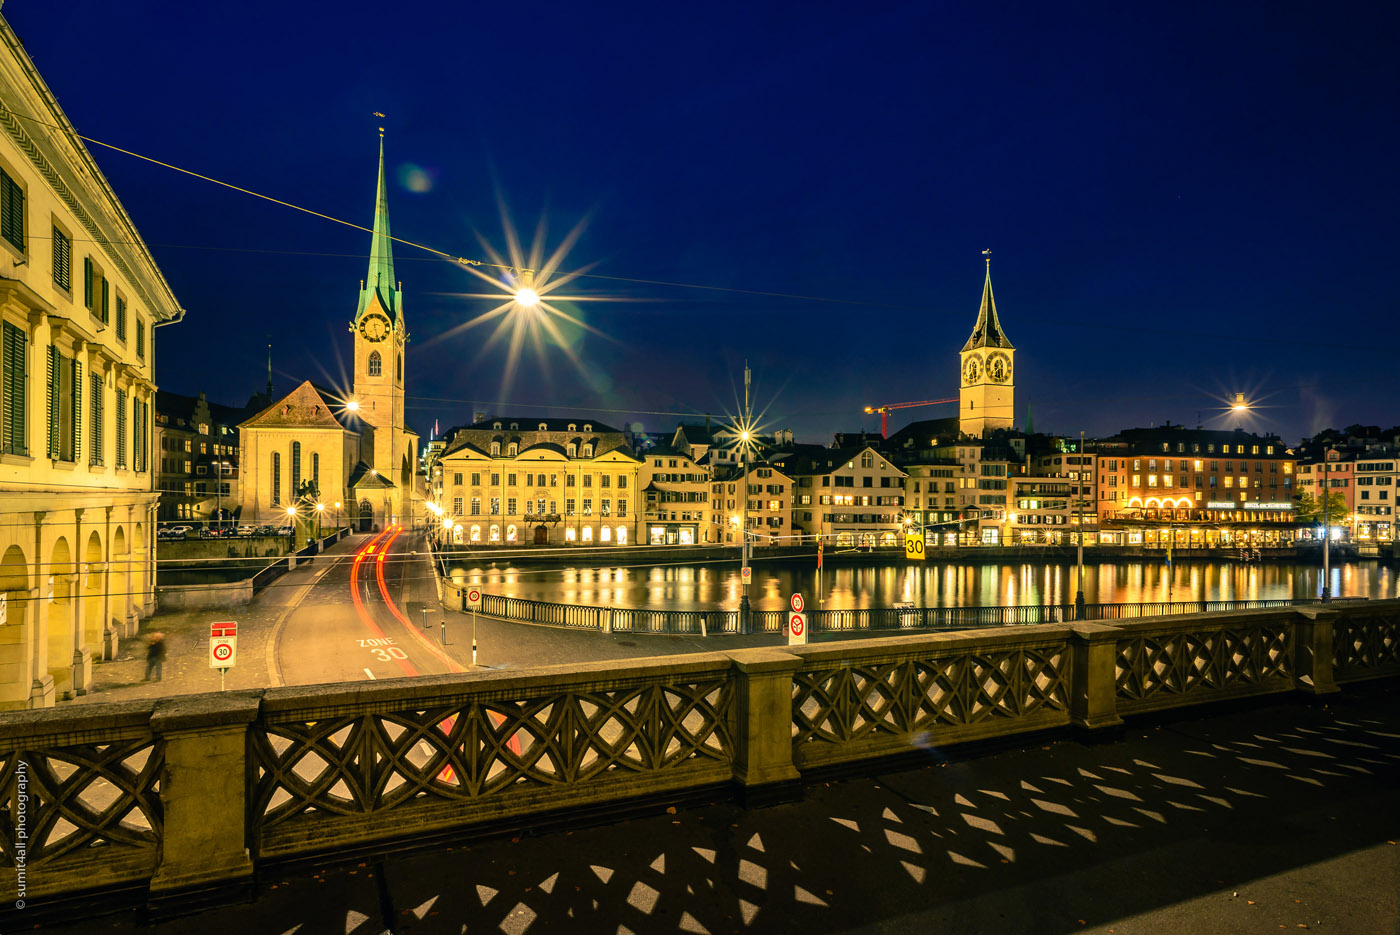 Artificial lights lit up the city of Zurich after sunset.